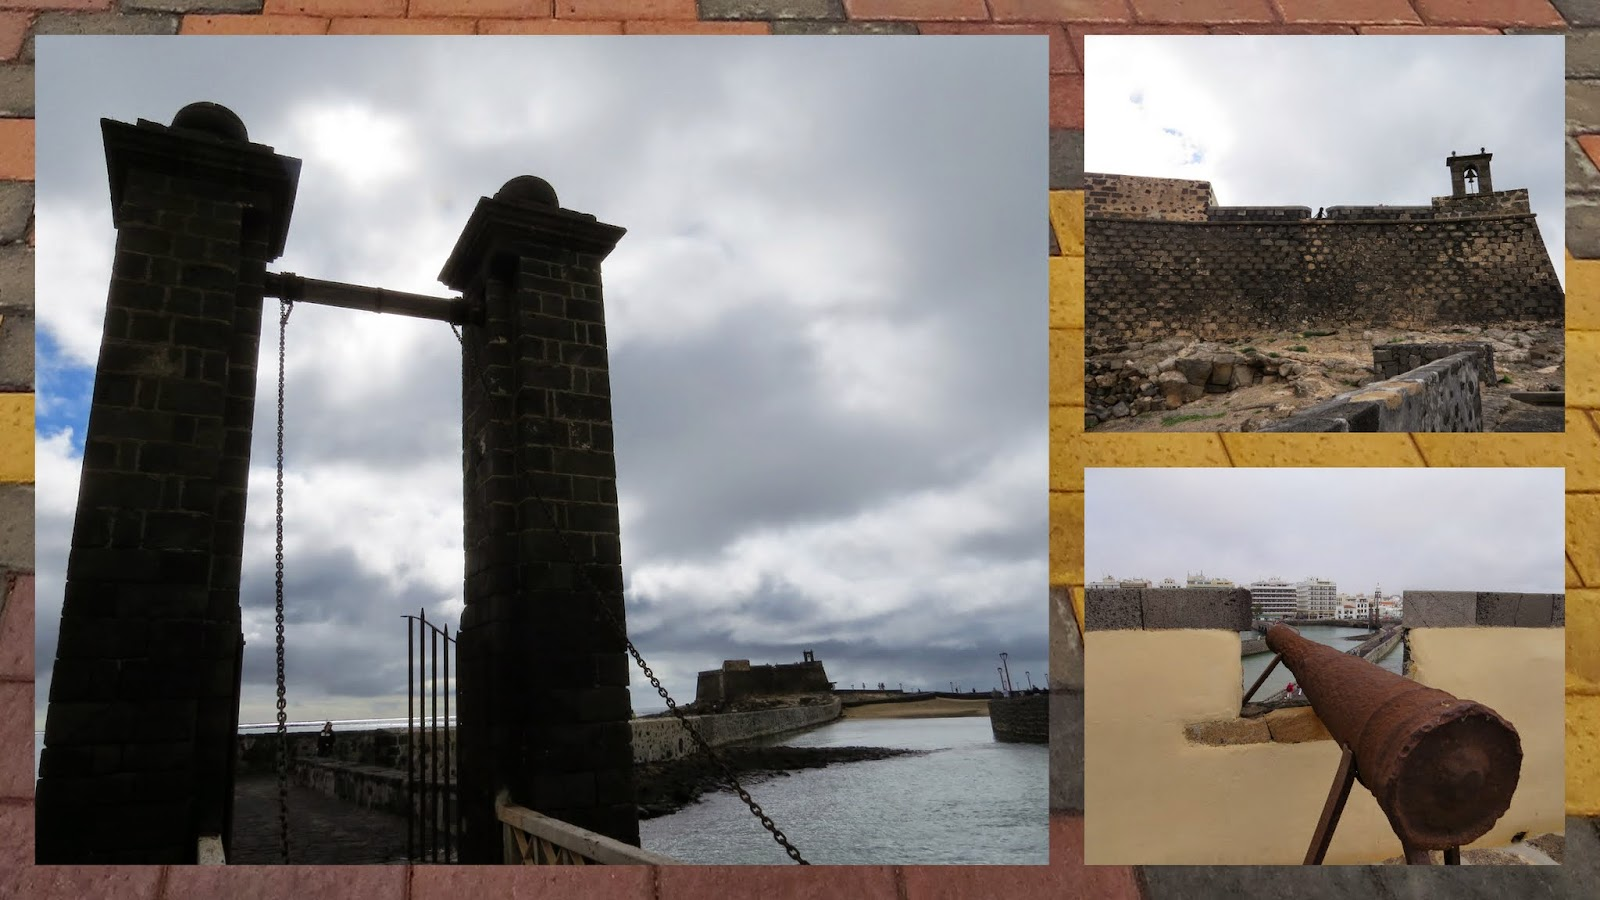 Lanzarote Points of Interest in January: The fort and museum at Arecife on Lanzarote